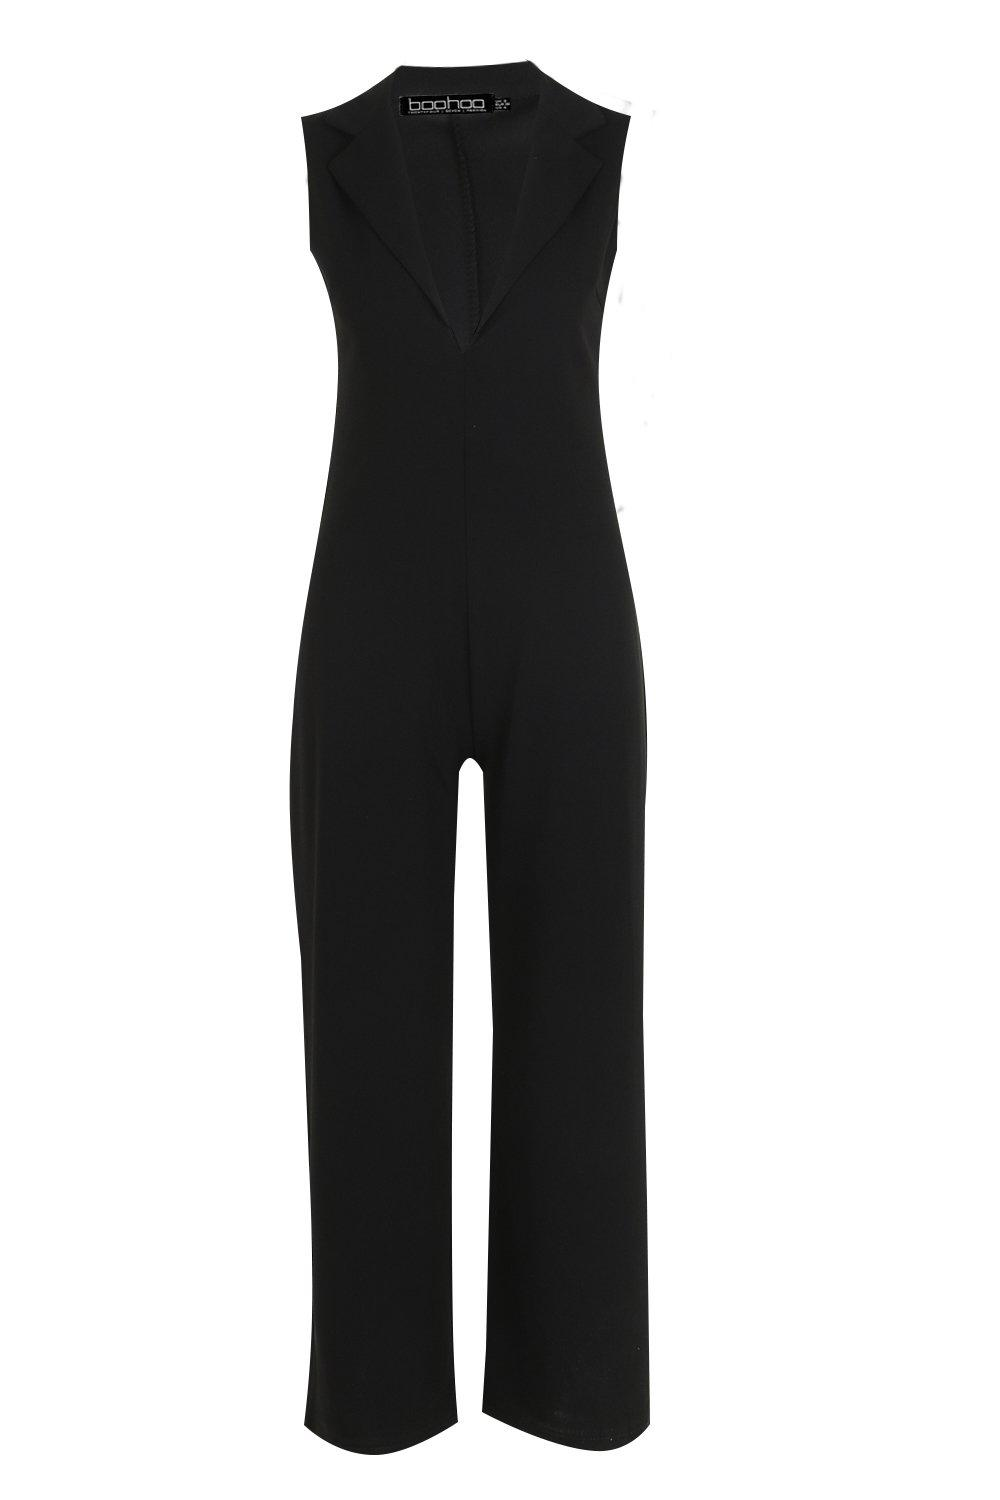 Detail Wide Jumpsuit V Tuk black Leg S78qwTx0